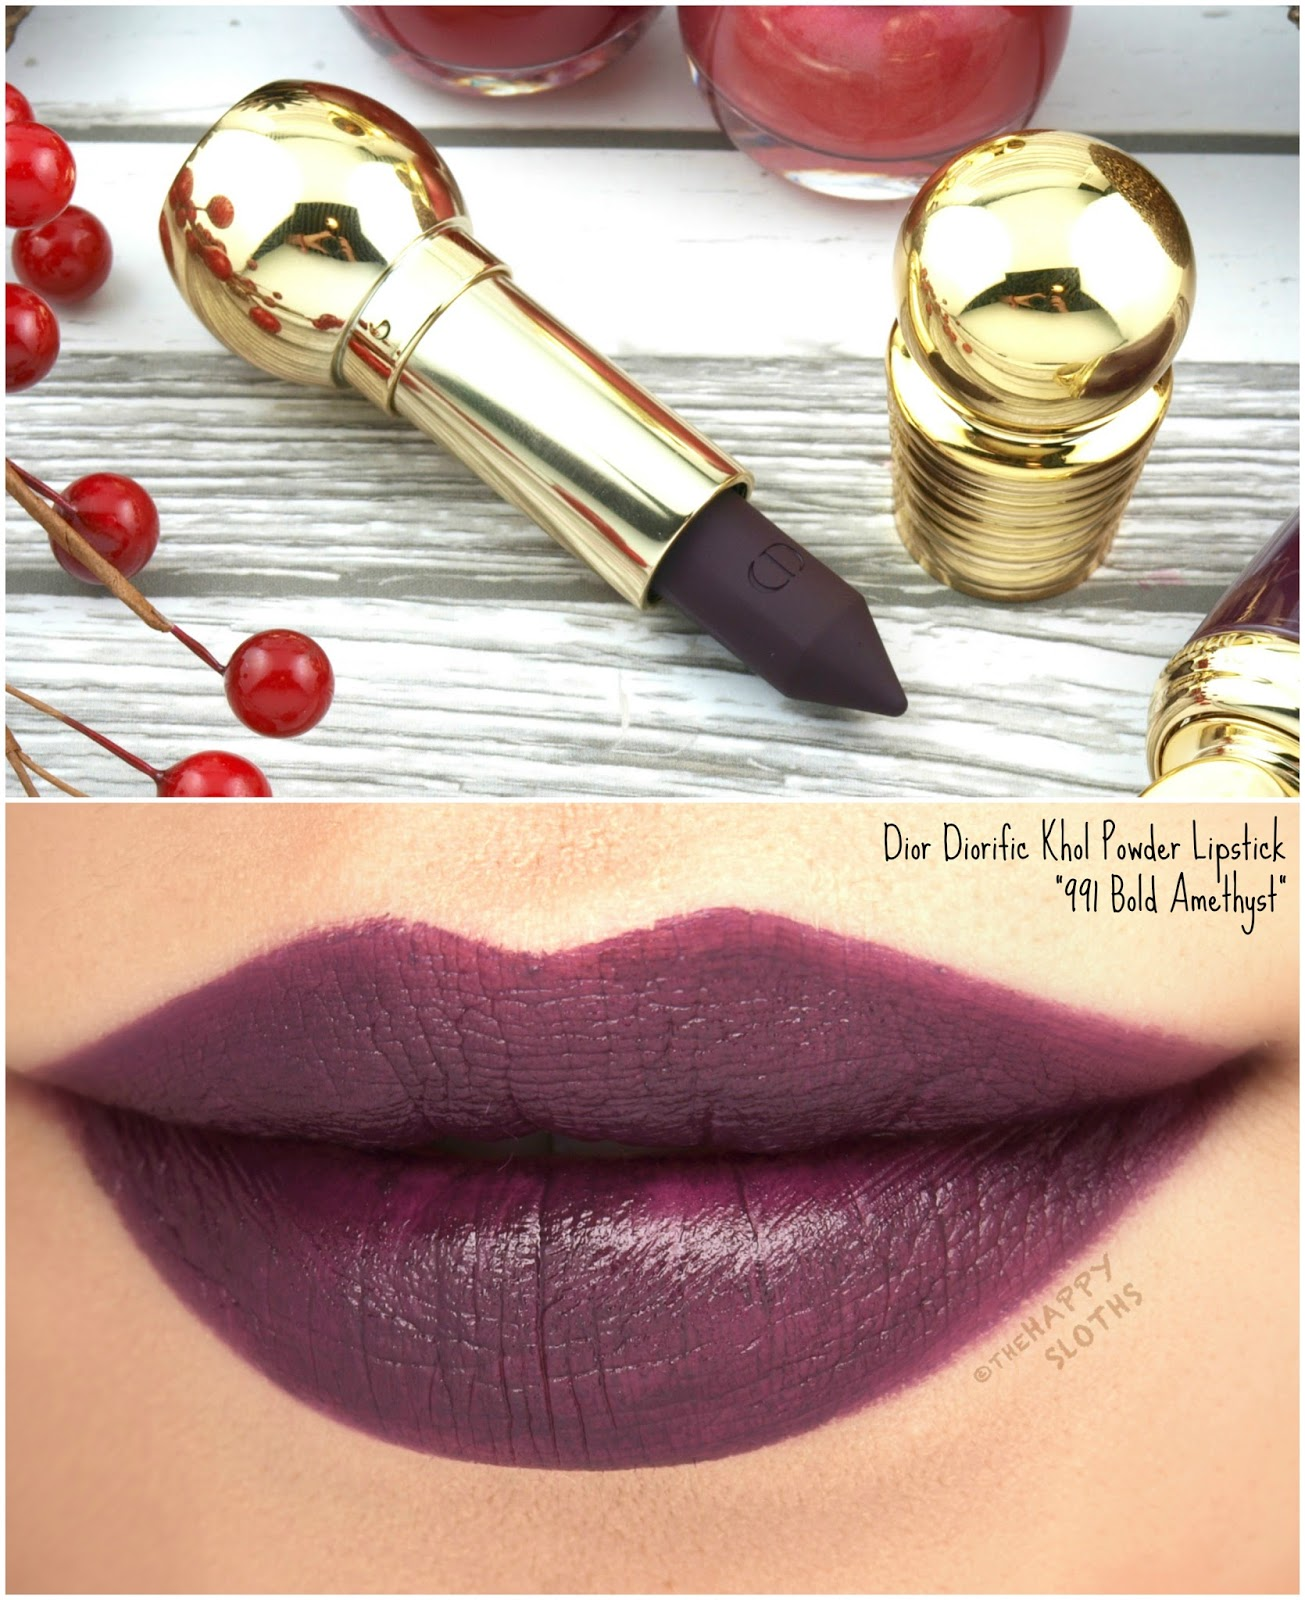 """Dior Holiday 2017   Diorific Khol Powder Lipstick in """"991 Bold Amethyst"""": Review and Swatches"""